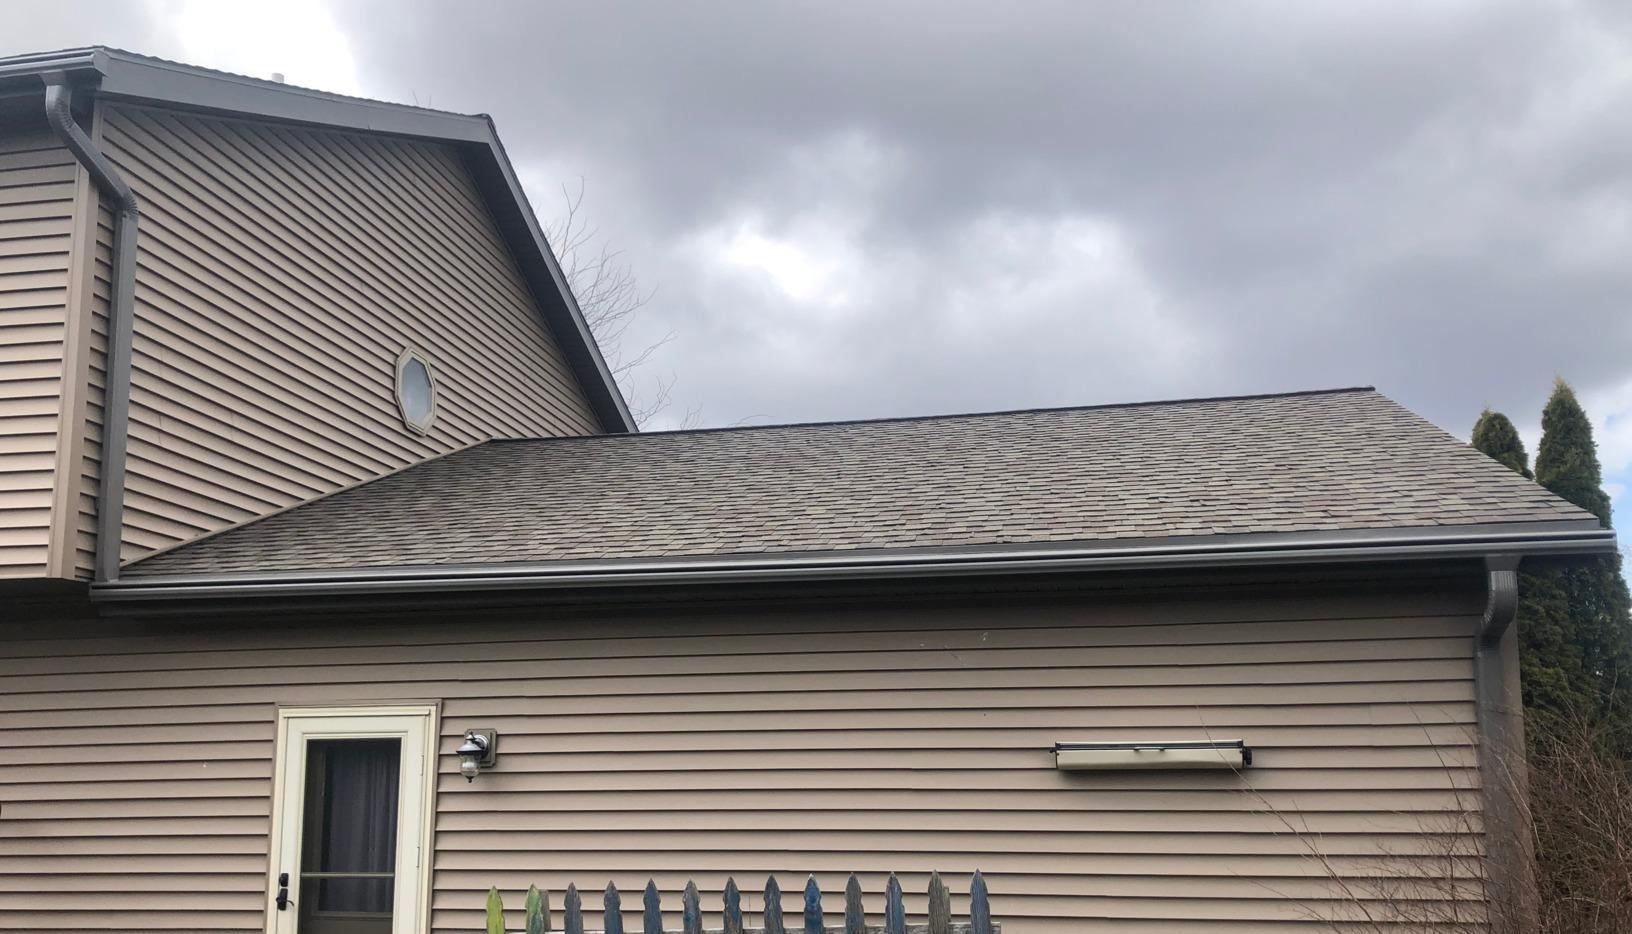 Tom's LeafGuard Gutter Project - After Photo